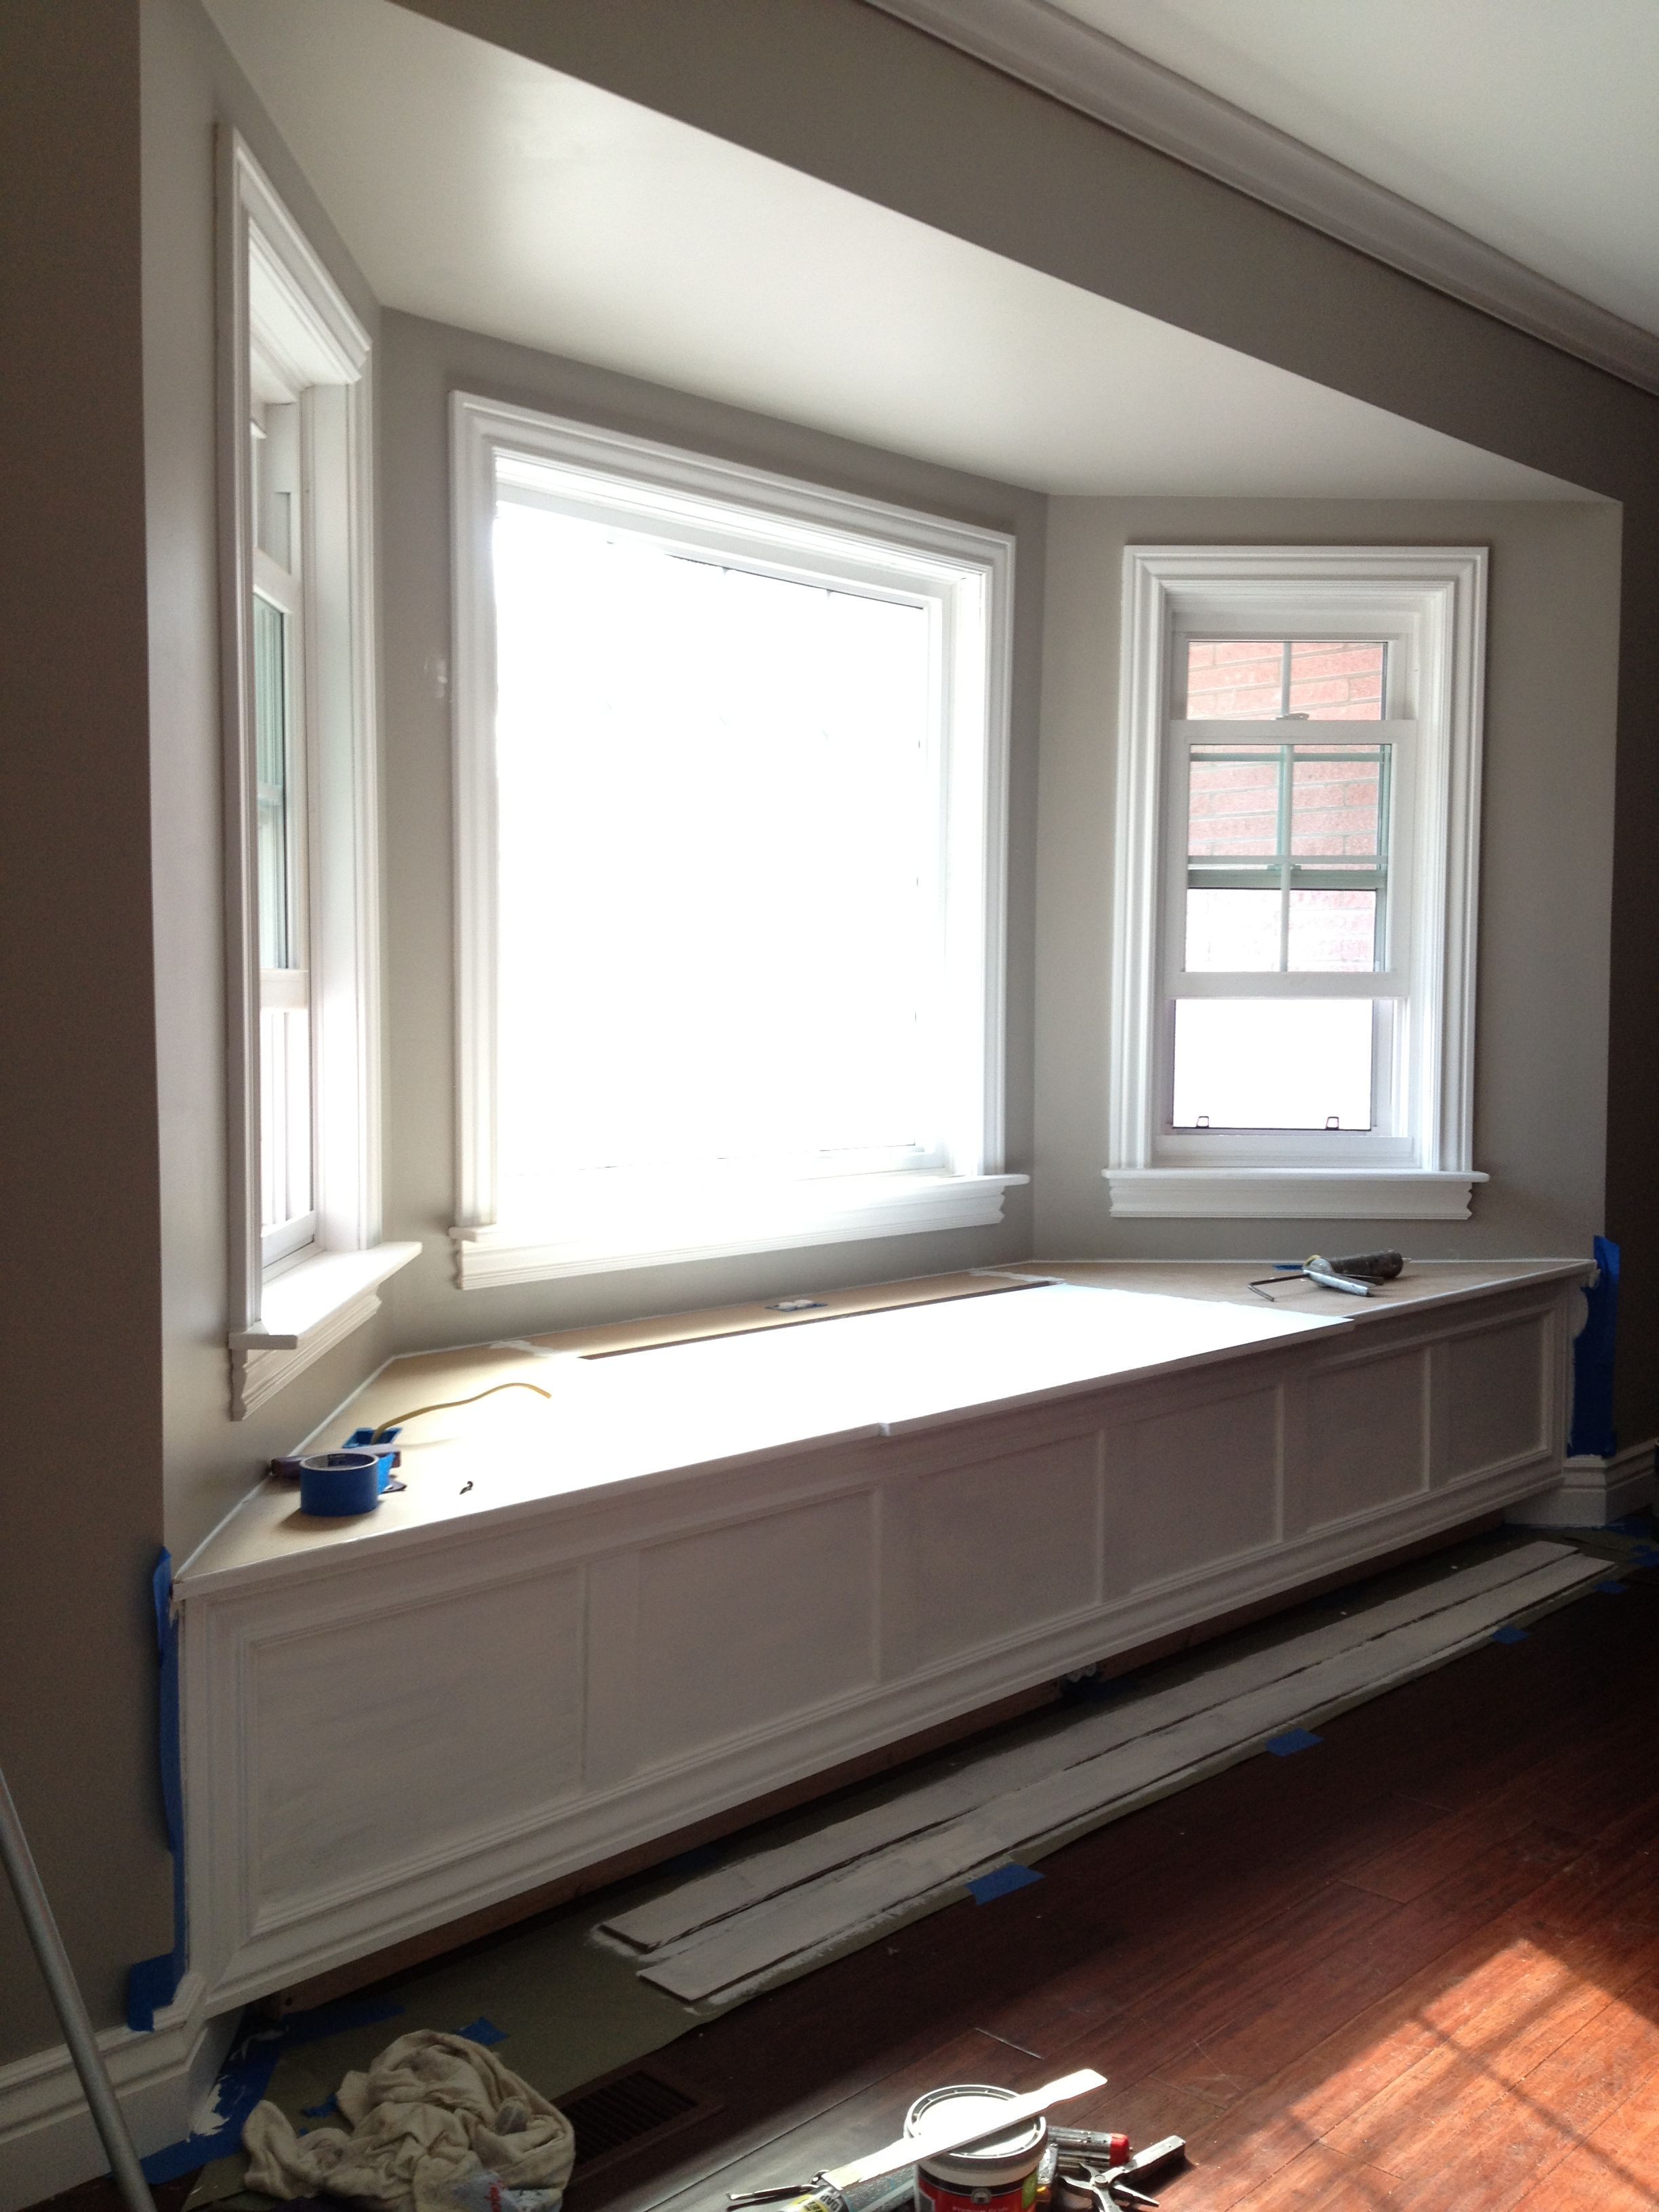 bay window area painted lighter than surrounding walls ...